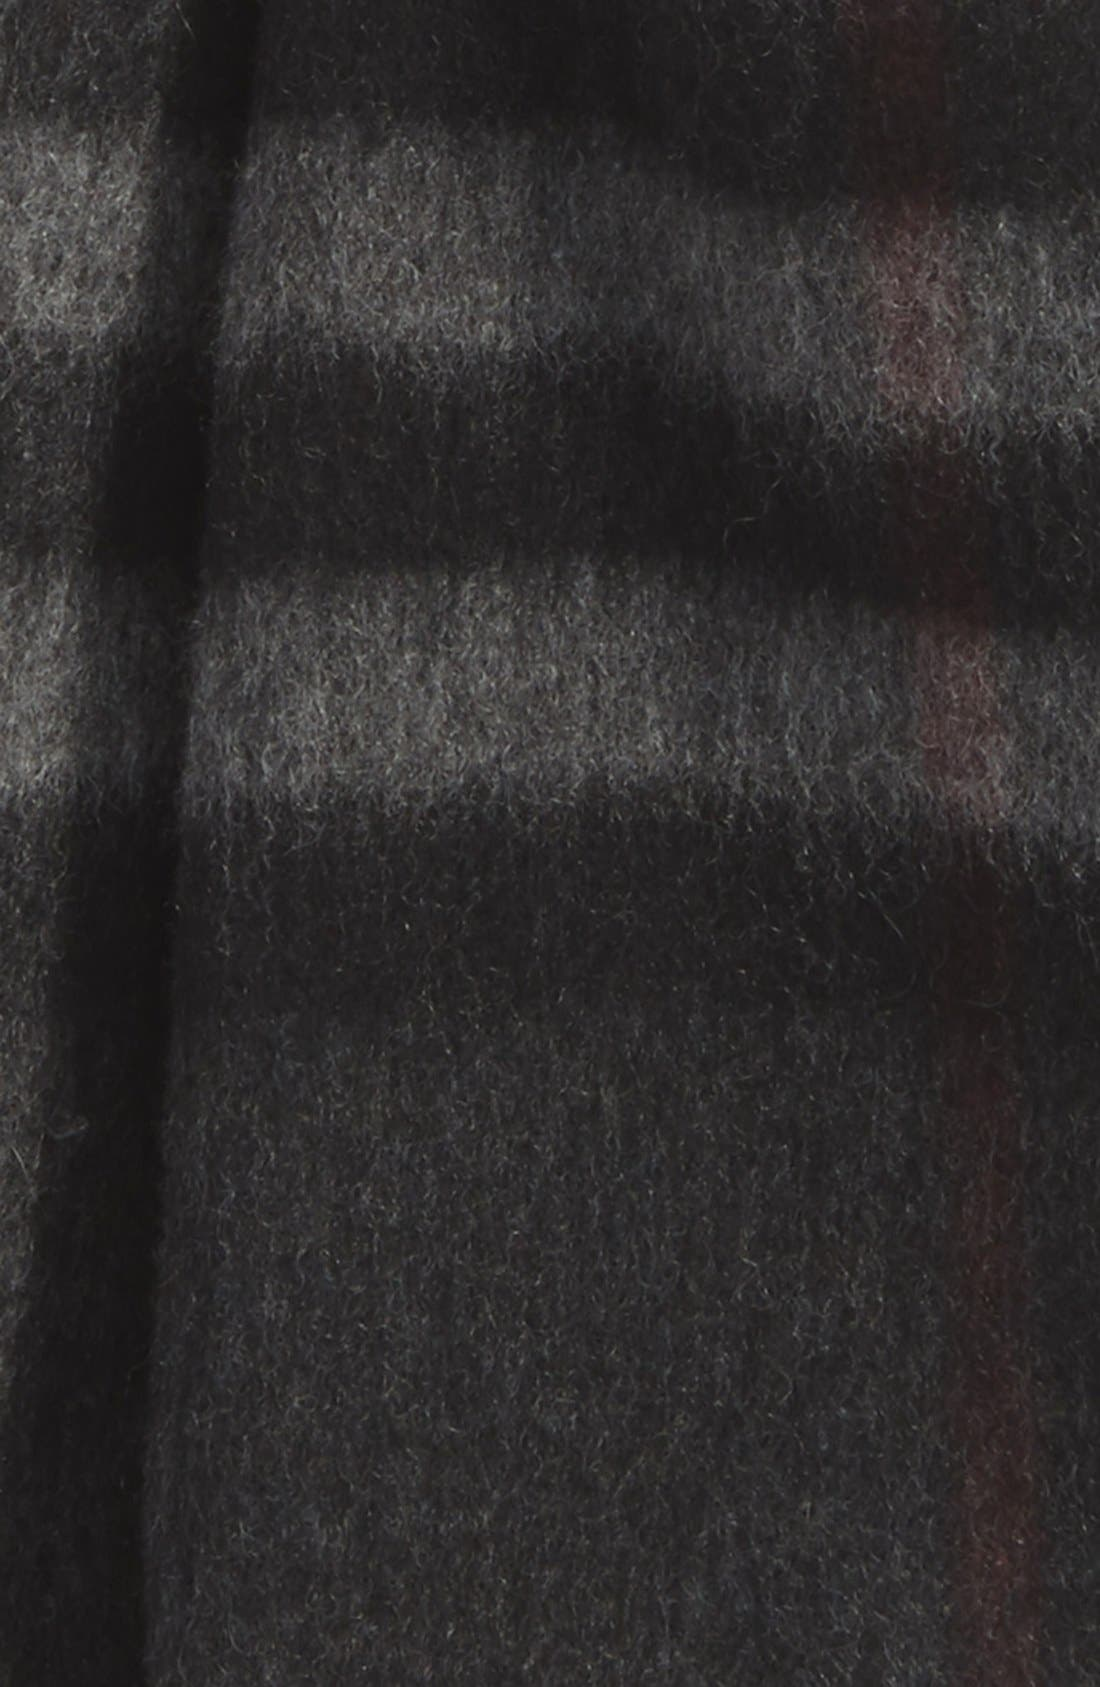 BURBERRY, Heritage Check Cashmere Scarf, Alternate thumbnail 2, color, 012